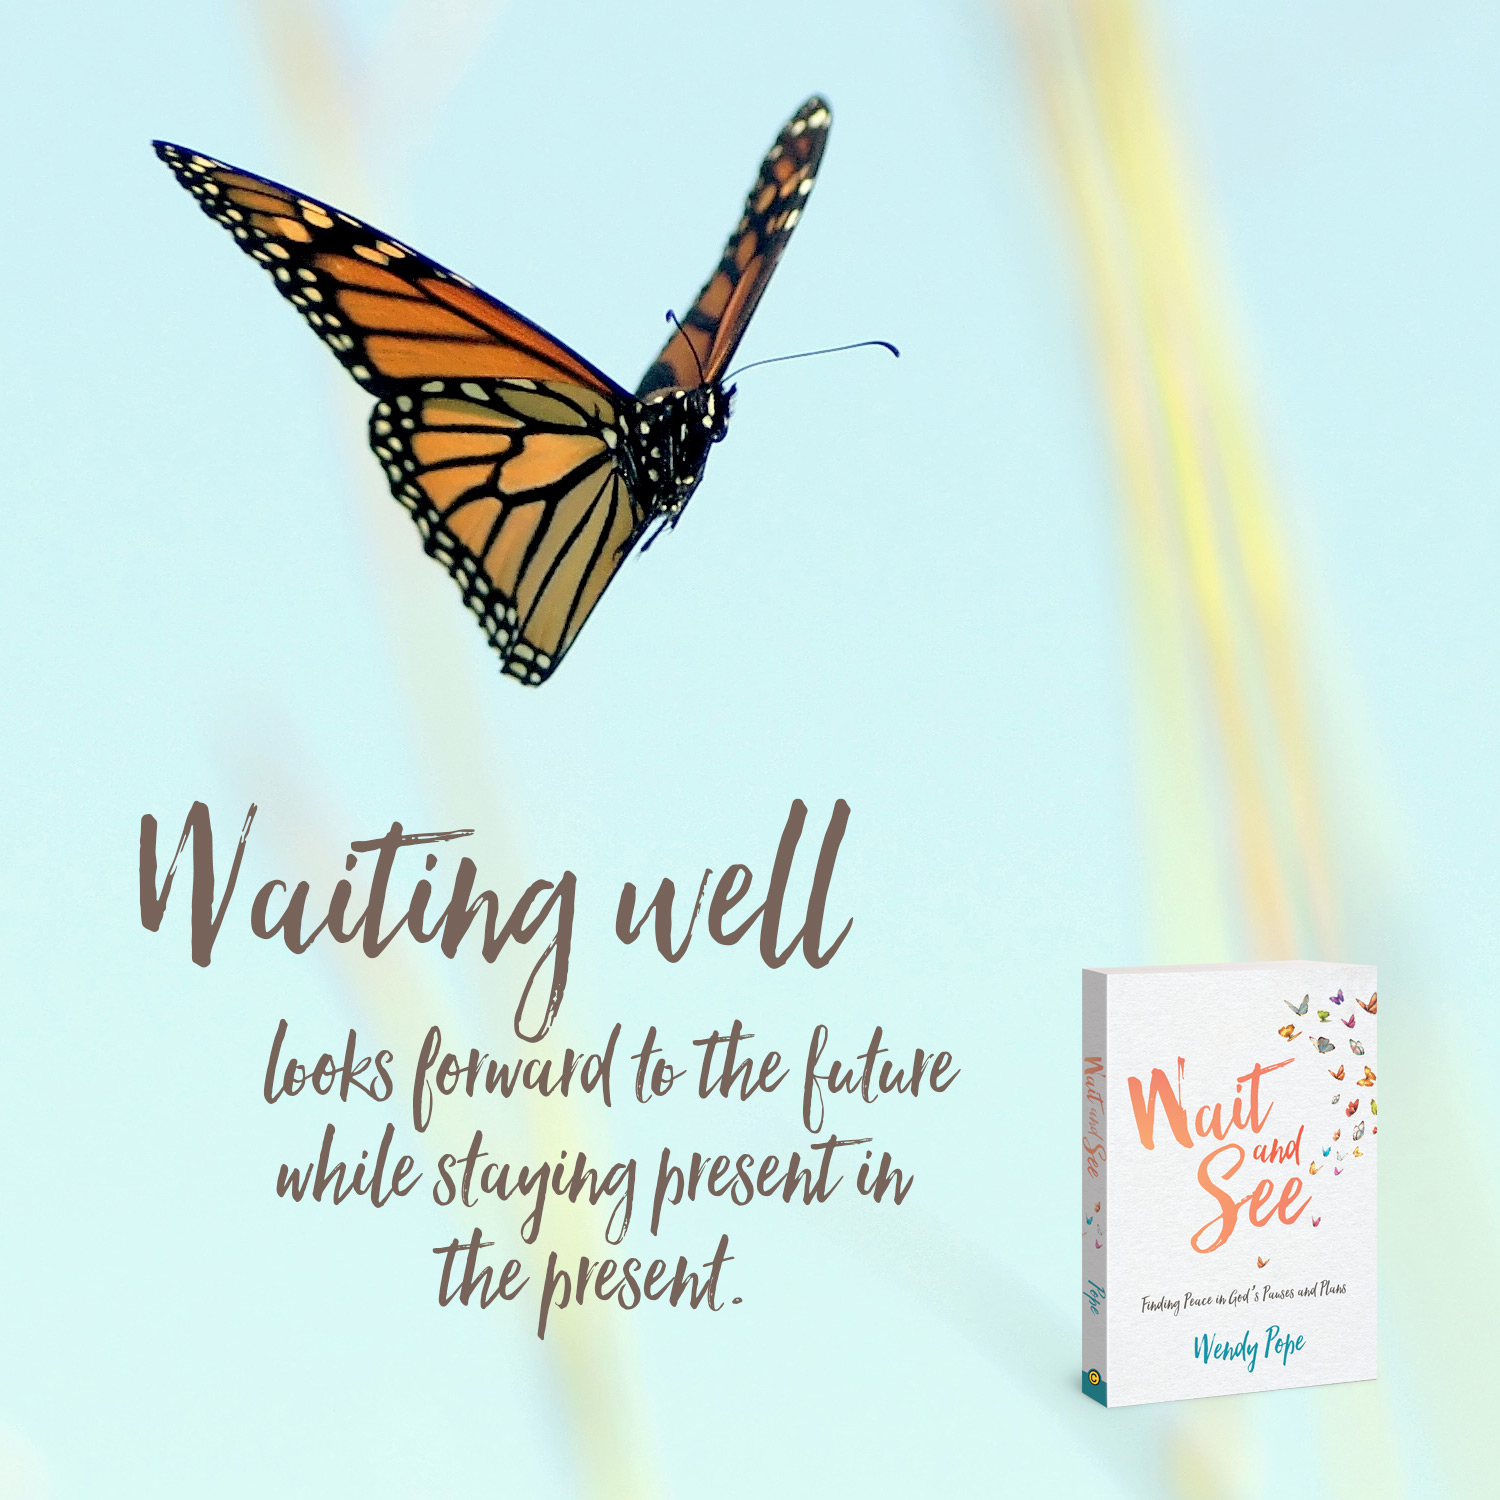 Waiting well looks forward to the future while staying present in the present.